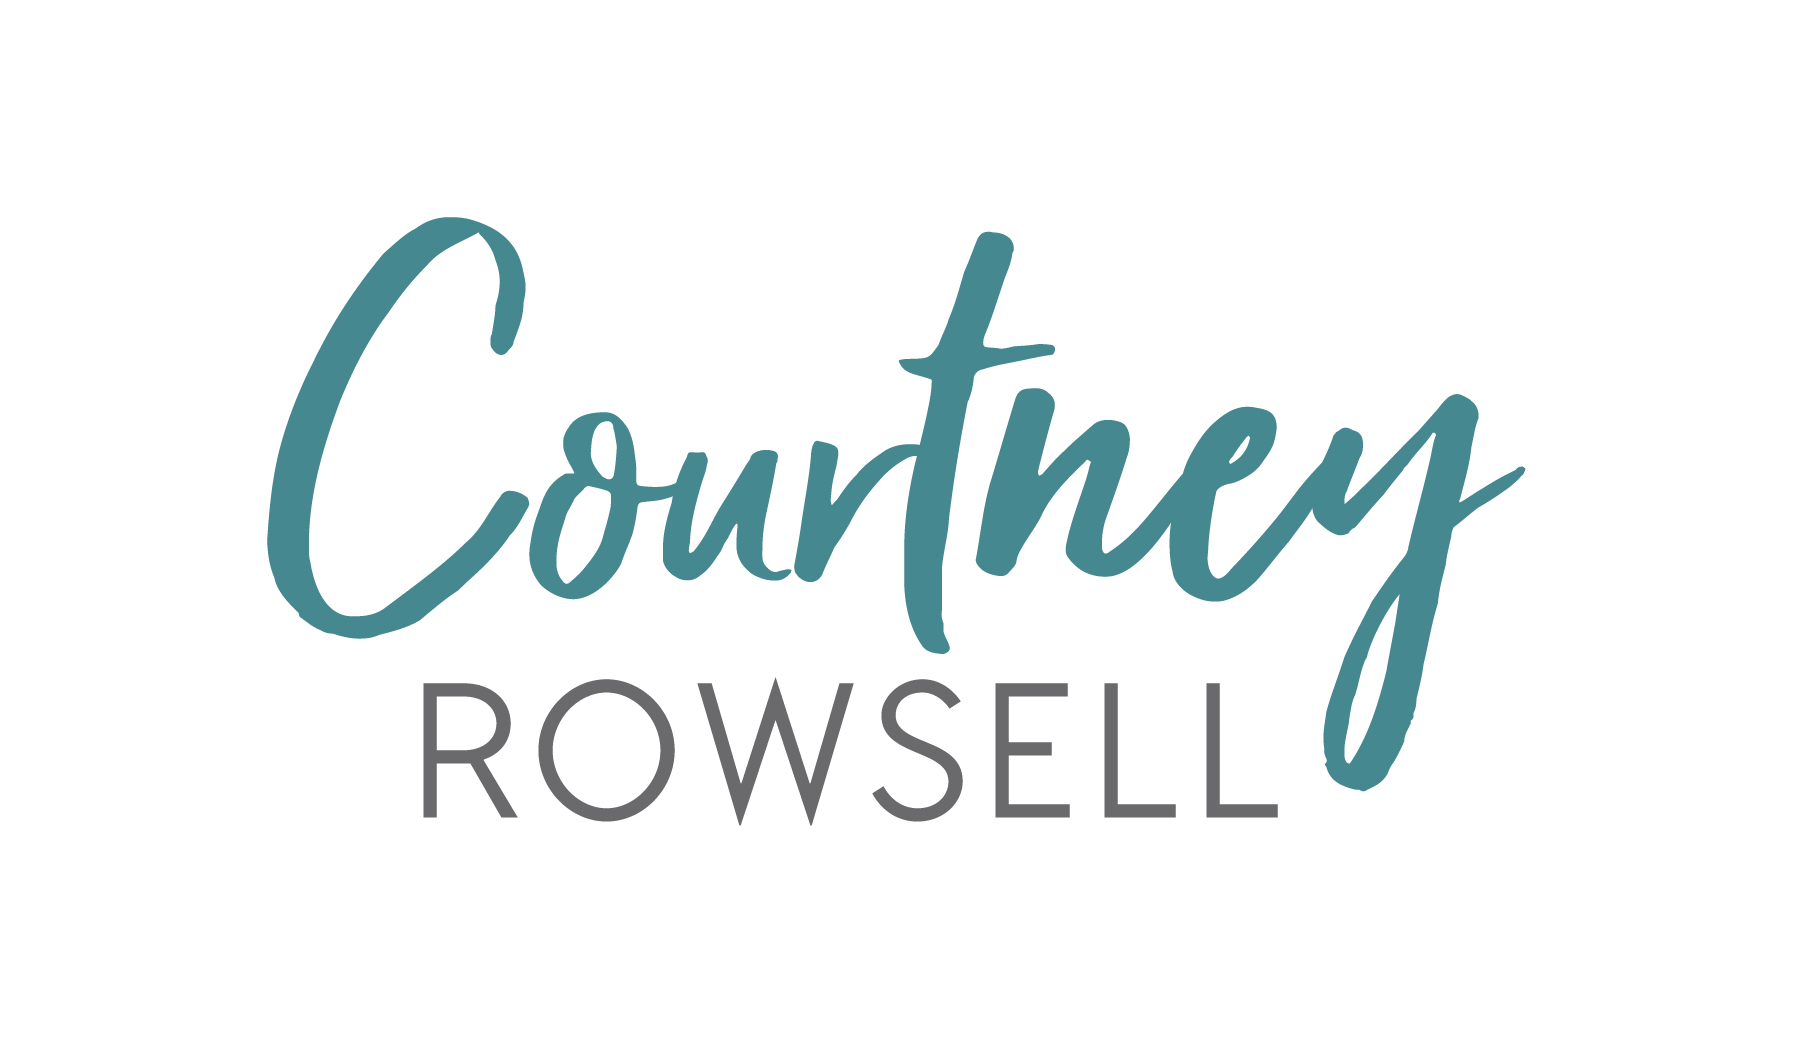 Courtney Rowsell